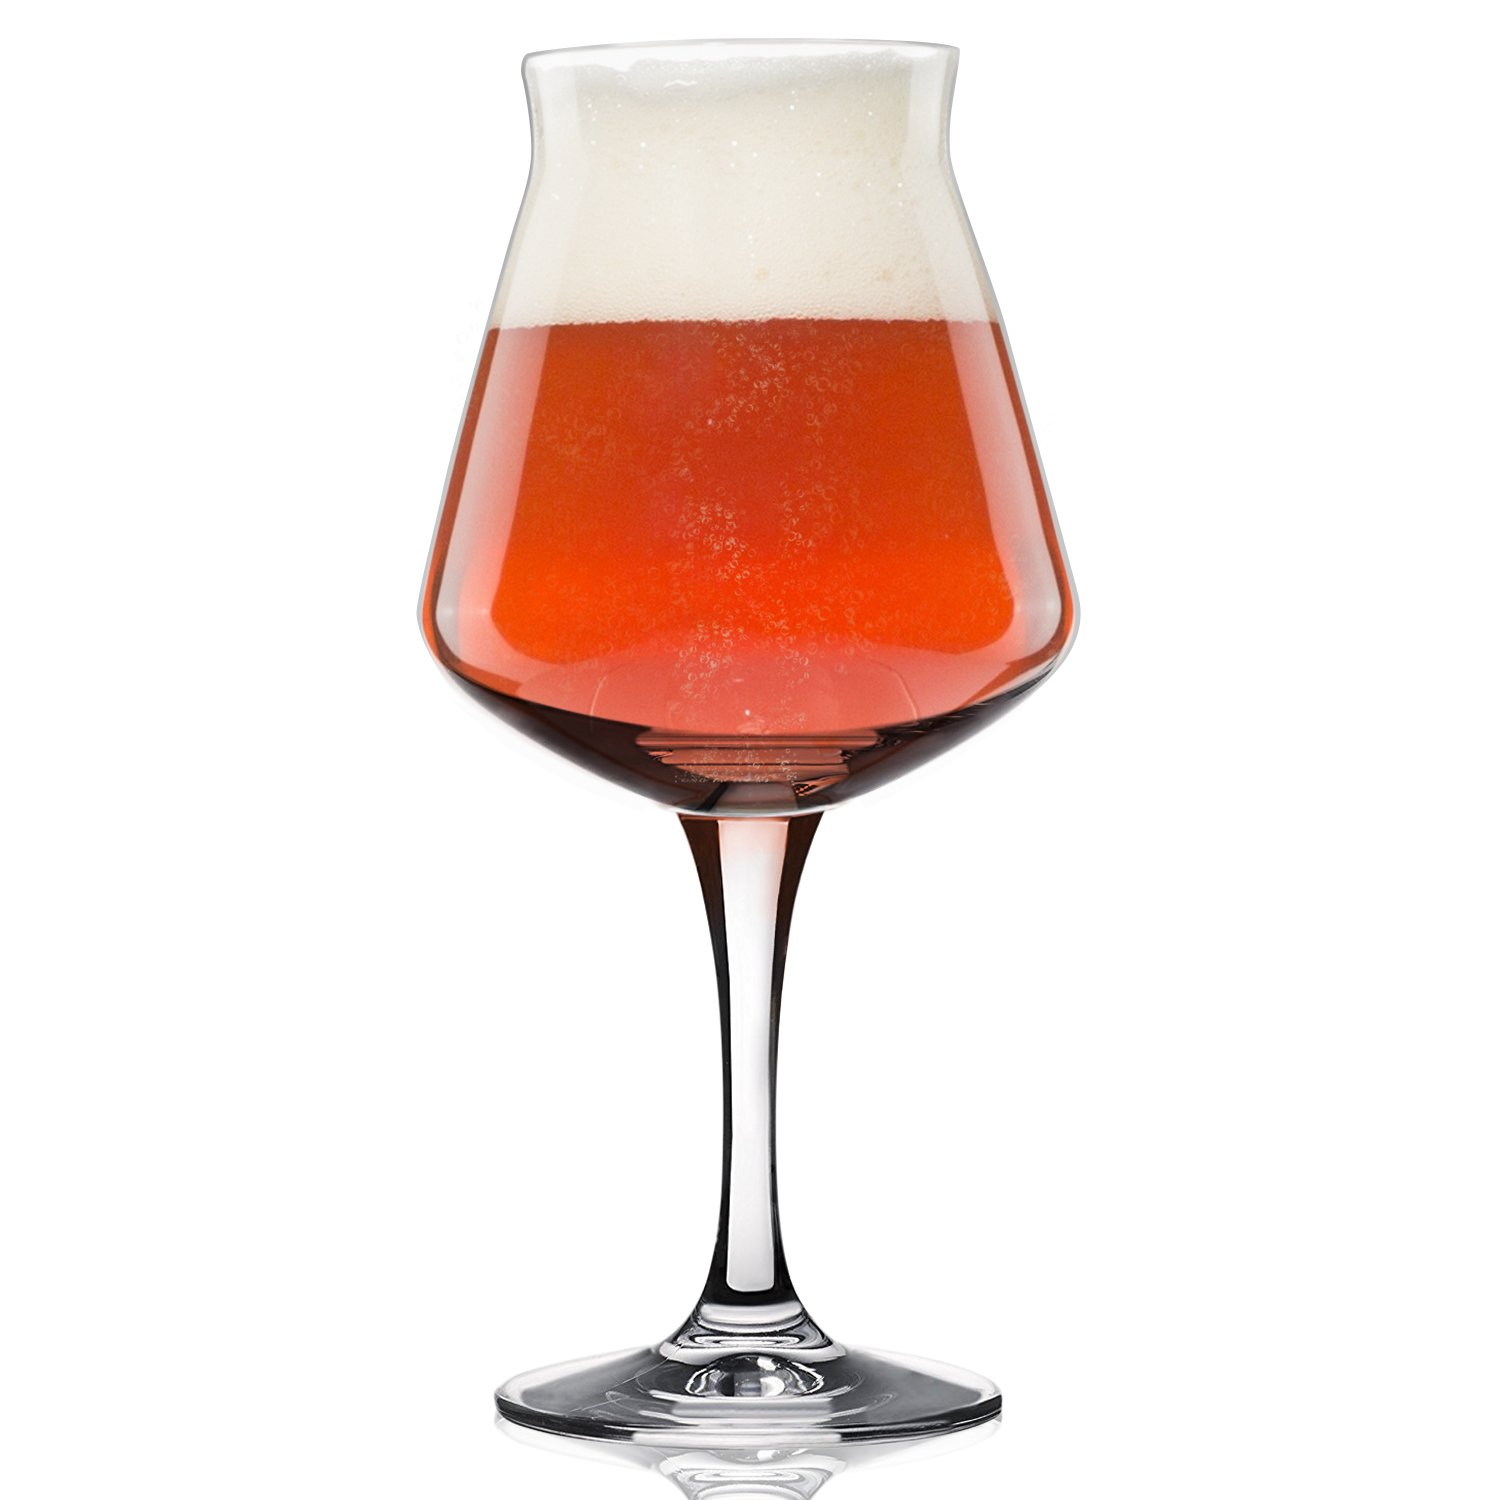 Nucleated Teku 3.0 Beer Glass by Rastal -Nucleation Pint Glasses for Better Head Retention, Aroma and Flavor - 14.2 oz Craft Beer Glass for Enhanced Beer Drinking Bliss - Gift Idea for Men